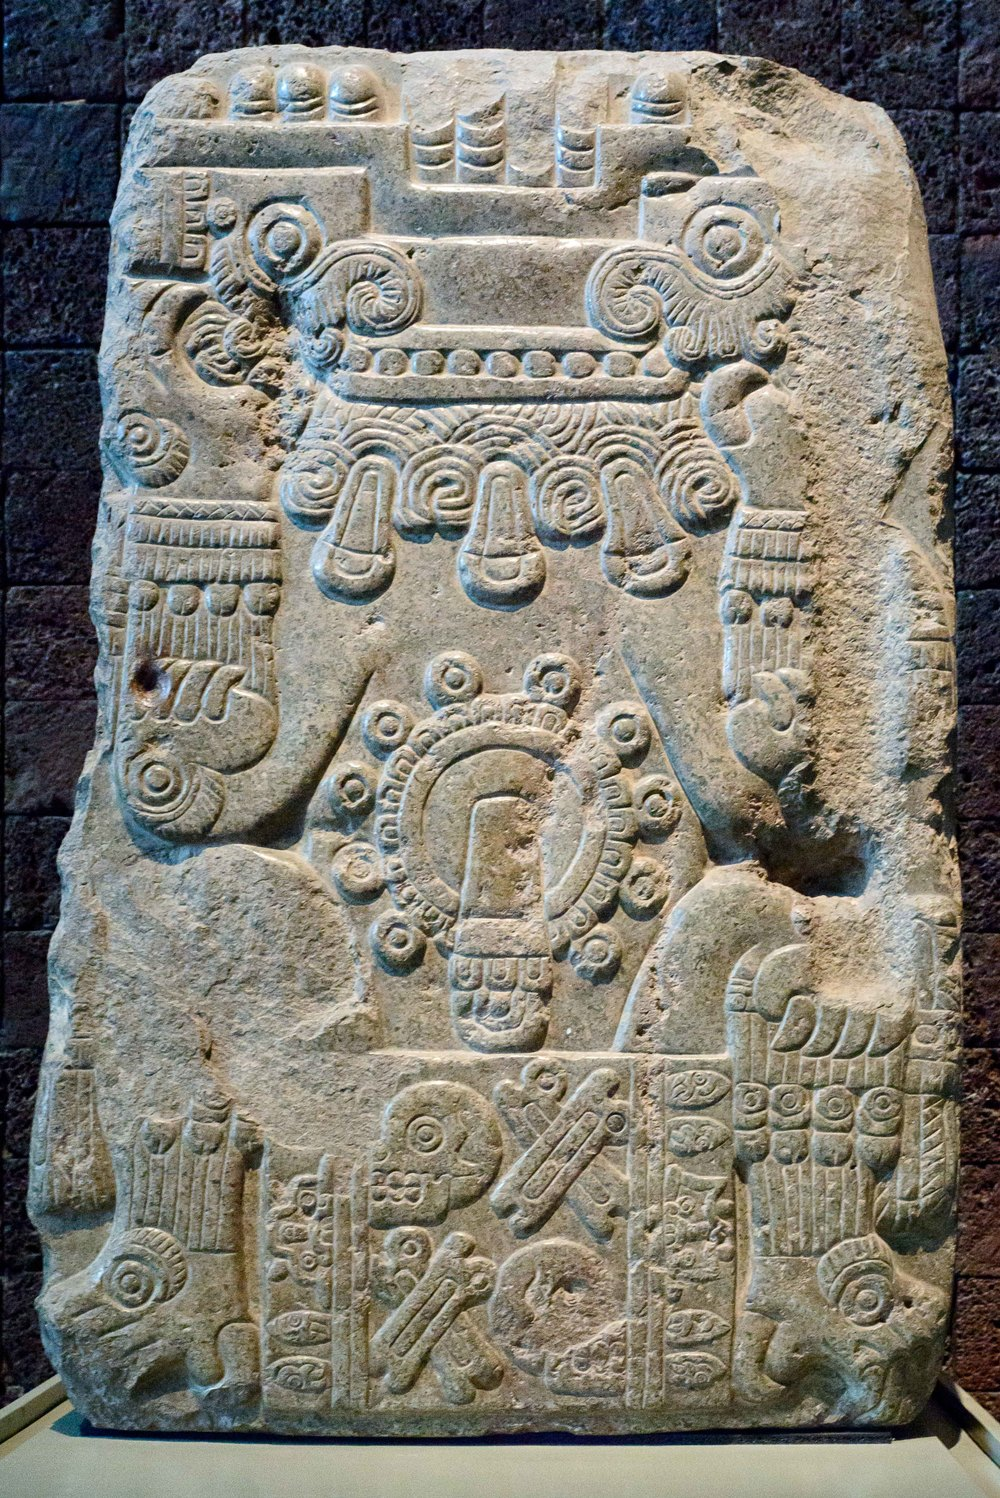 Tlaltecuhtli tombstone . Fine bas-relief representing the earth monster lurking in its characteristic position and head thrown back. The figure is adorned with anklets with bells and precious stones and wears a skirt decorated with skulls and crossbones.In the center is the jade or chalchihuite glyph, symbol of the preciousness.